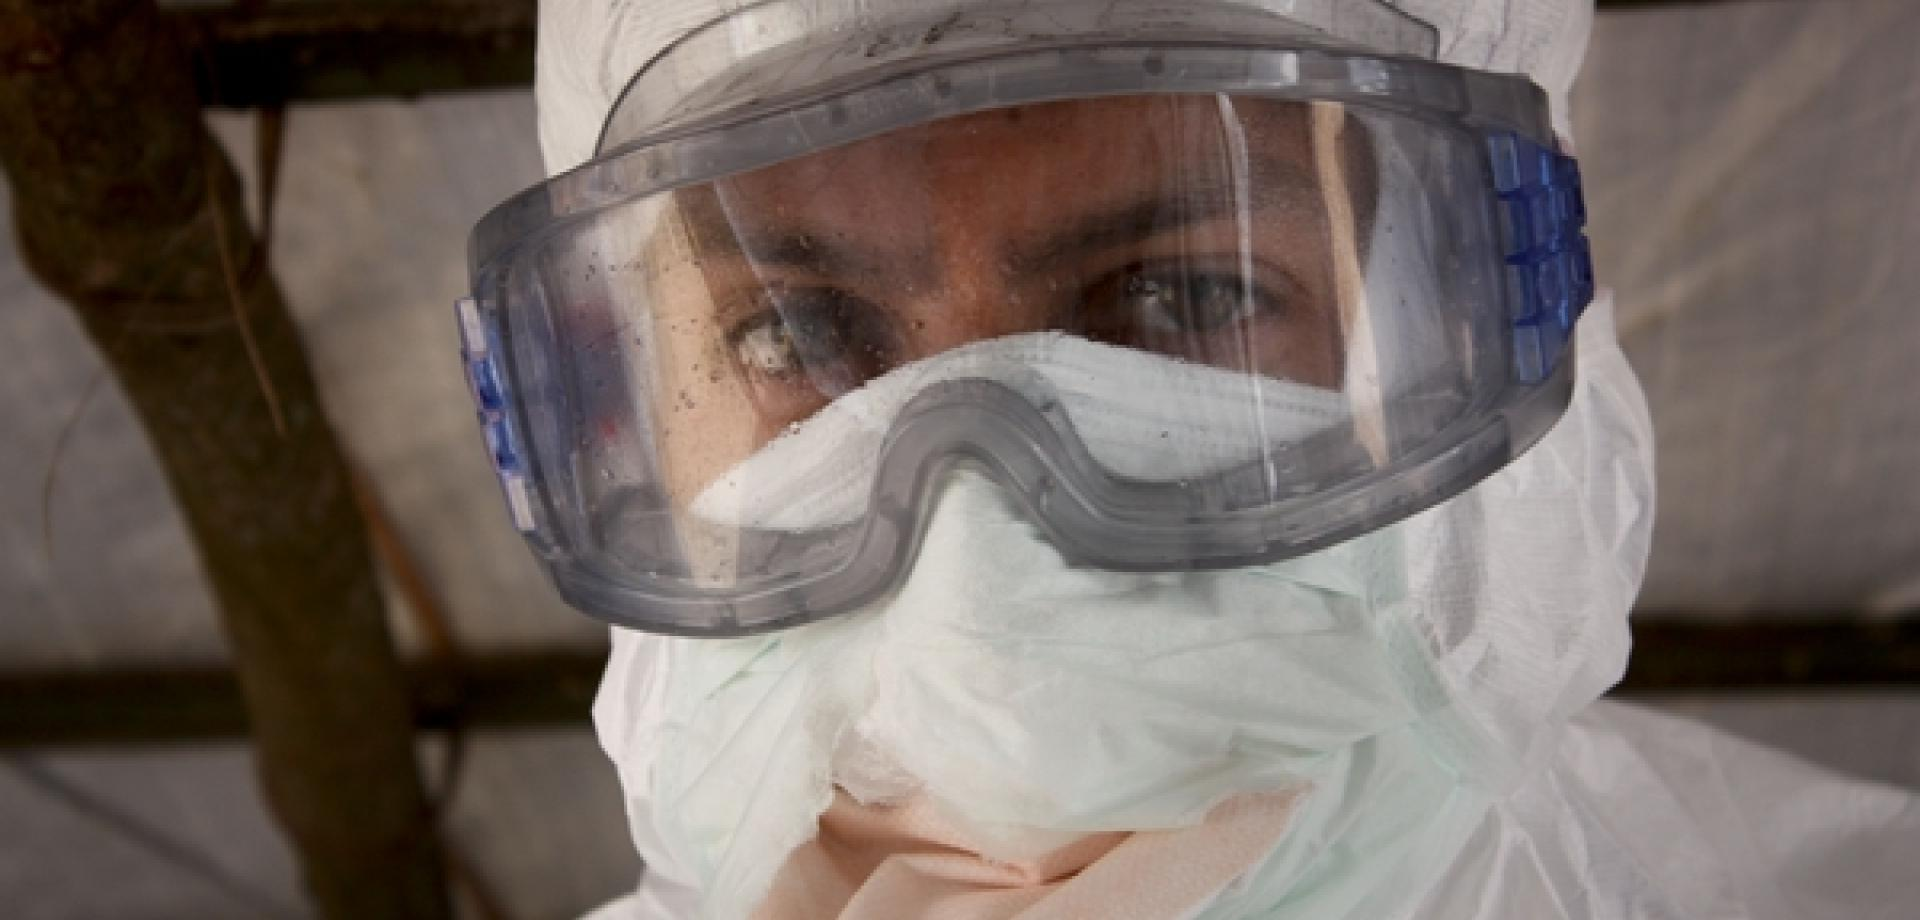 Luis Encinas wearing his protective gear at an Ebola treatment centre